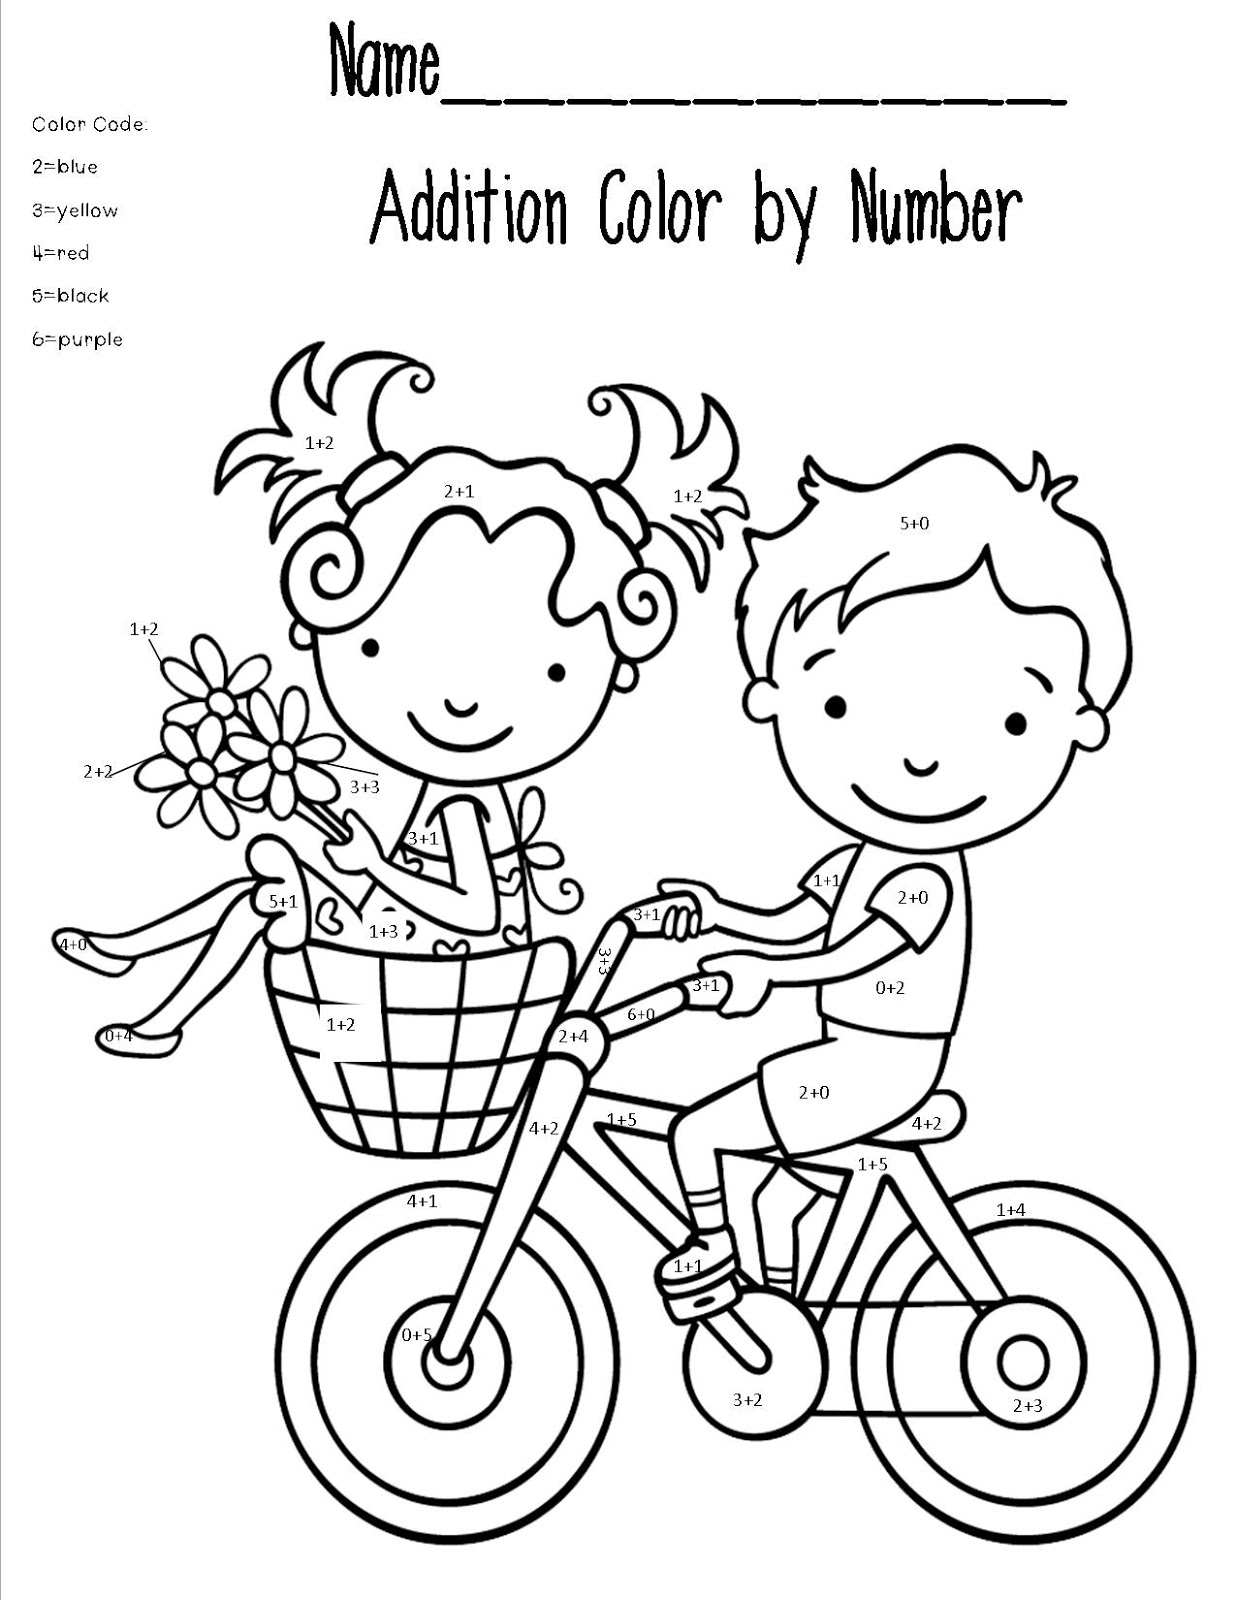 coloring math for kids math coloring pages best coloring pages for kids for coloring math kids